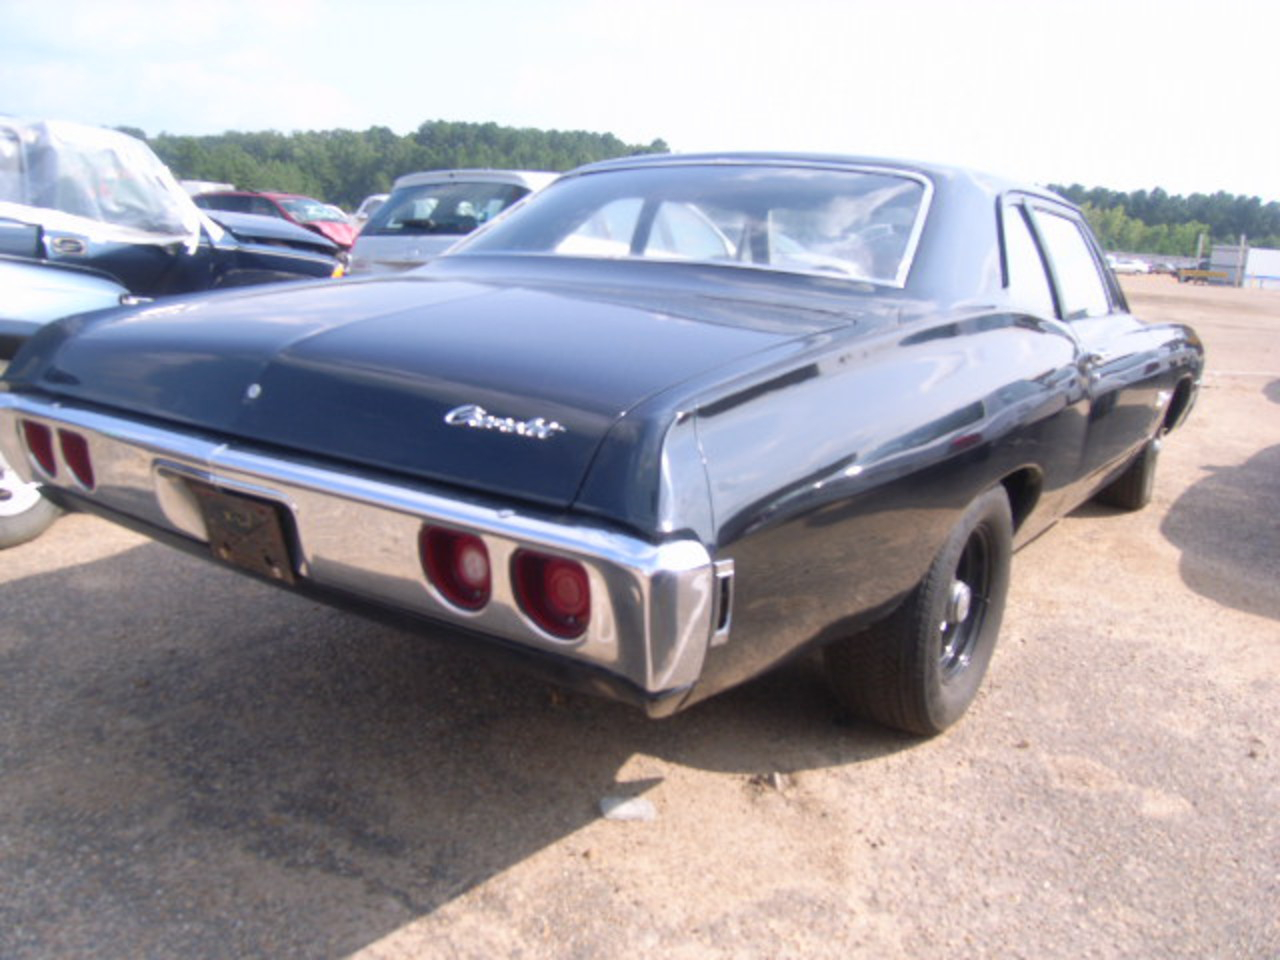 Salvage CHEVROLET BISCAYNE 1968 for sale, vin: 153118F240613 in FLORENCE,